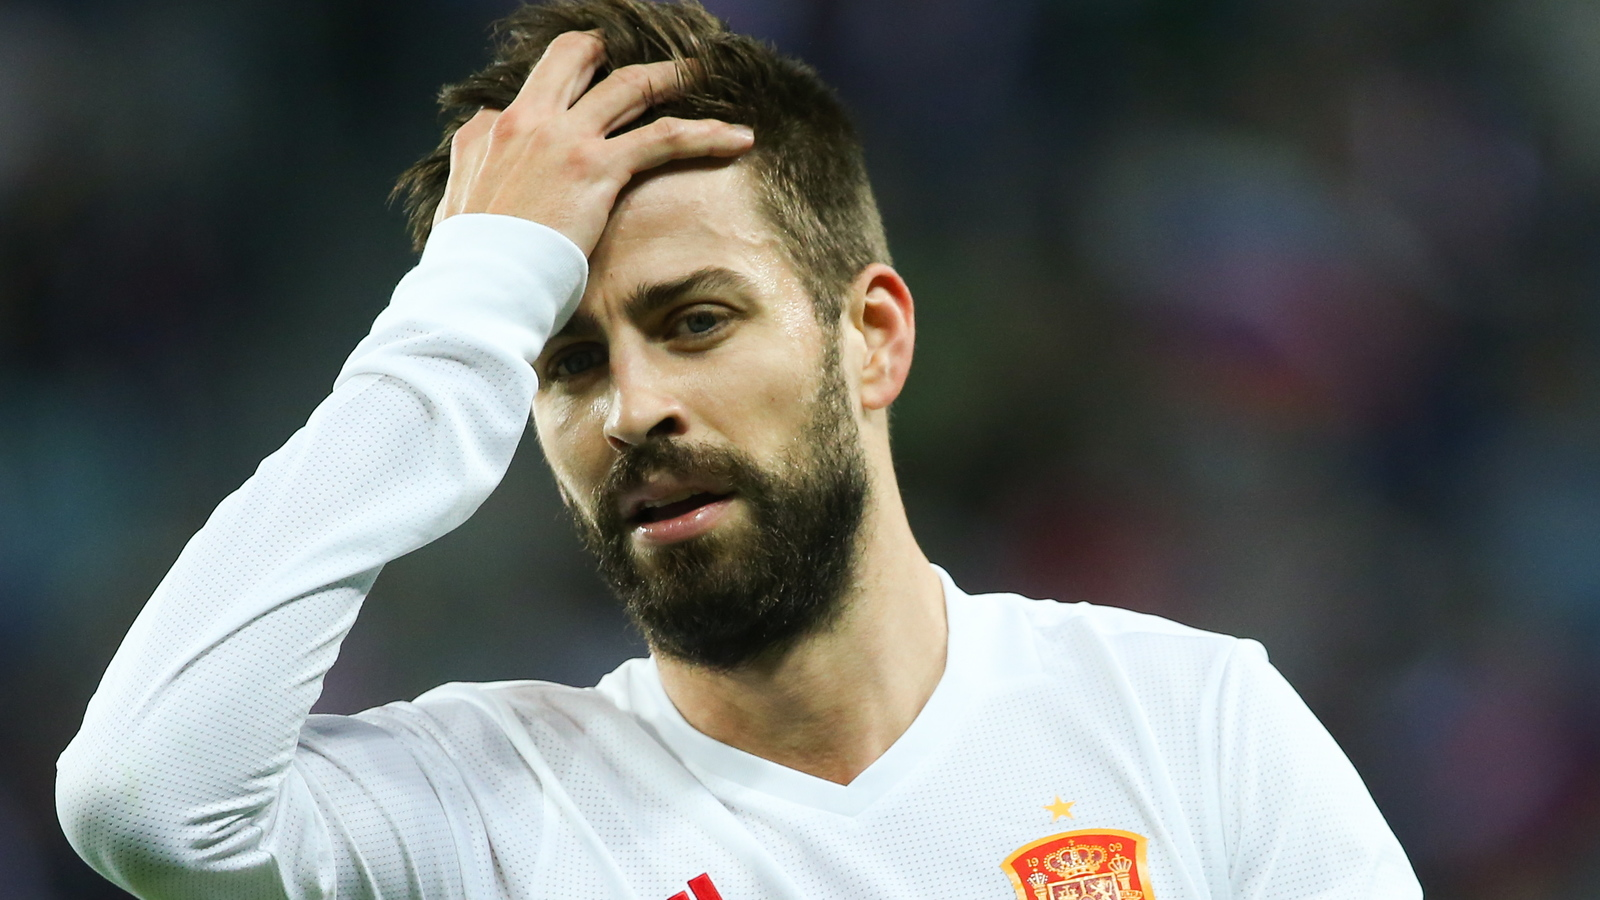 Spain Threatened With World Cup Expulsion Over Warning Against Government Interference